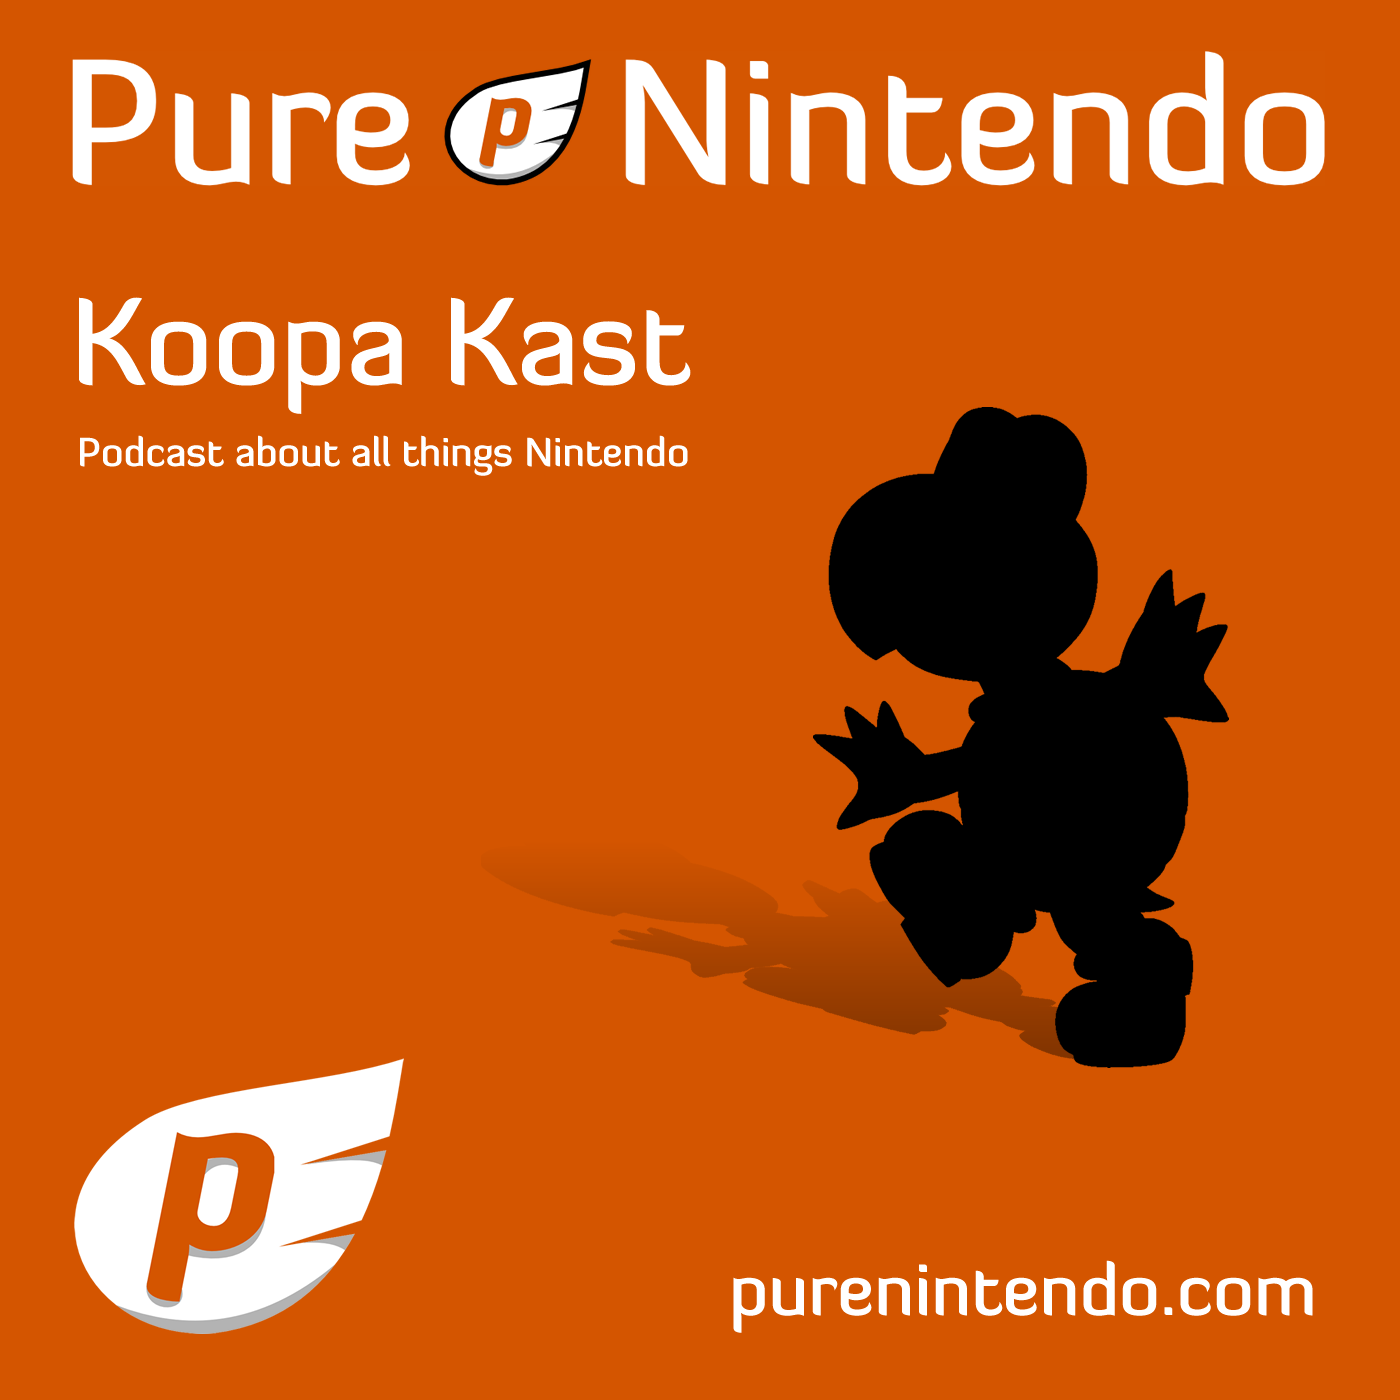 Koopa Kast #46 here at 8:30PM EST!